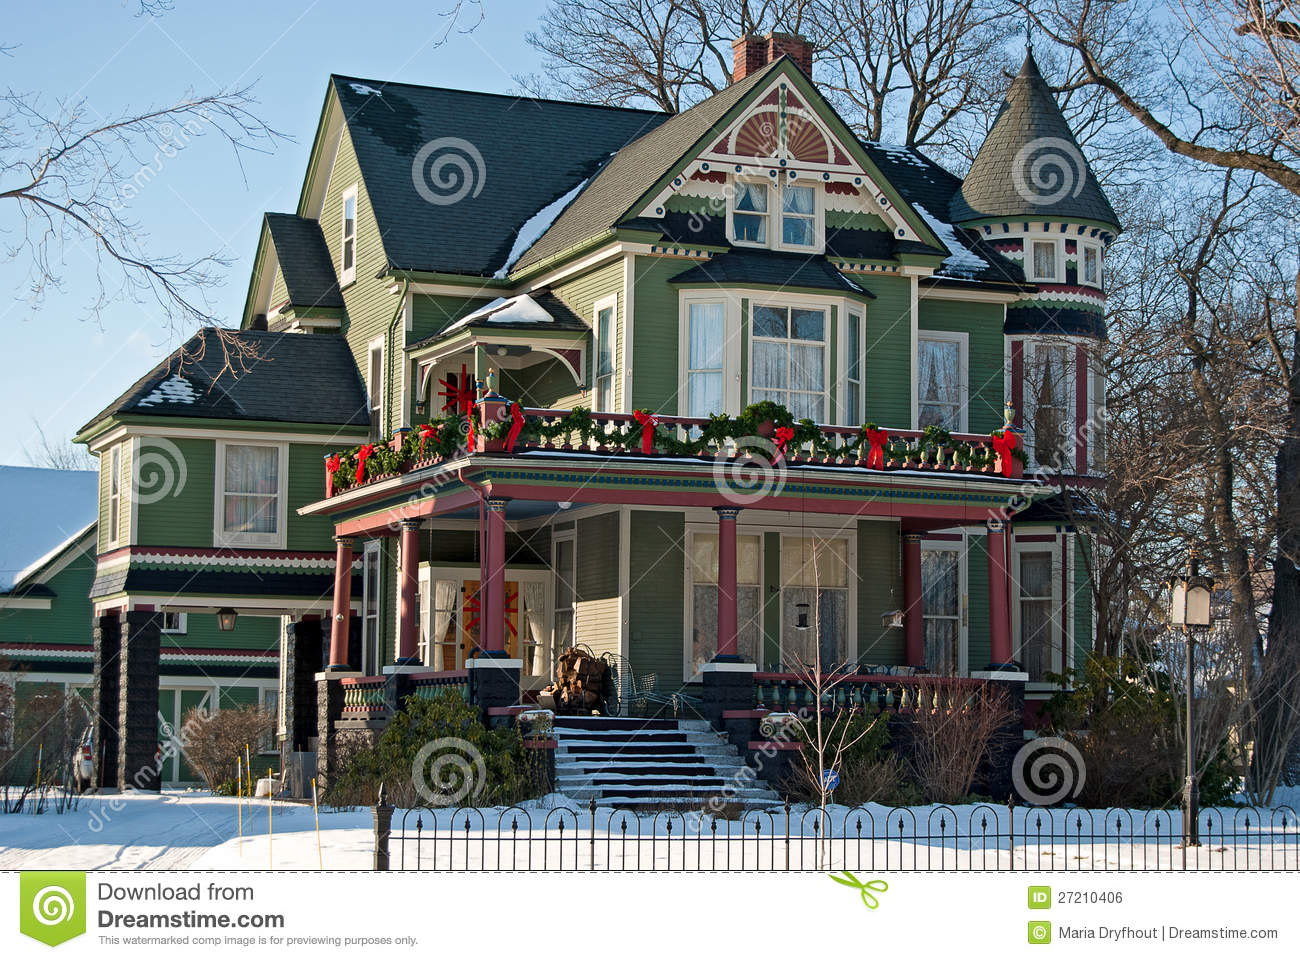 Victorian Christmas House Royalty Free Stock Image - Image: 27210406